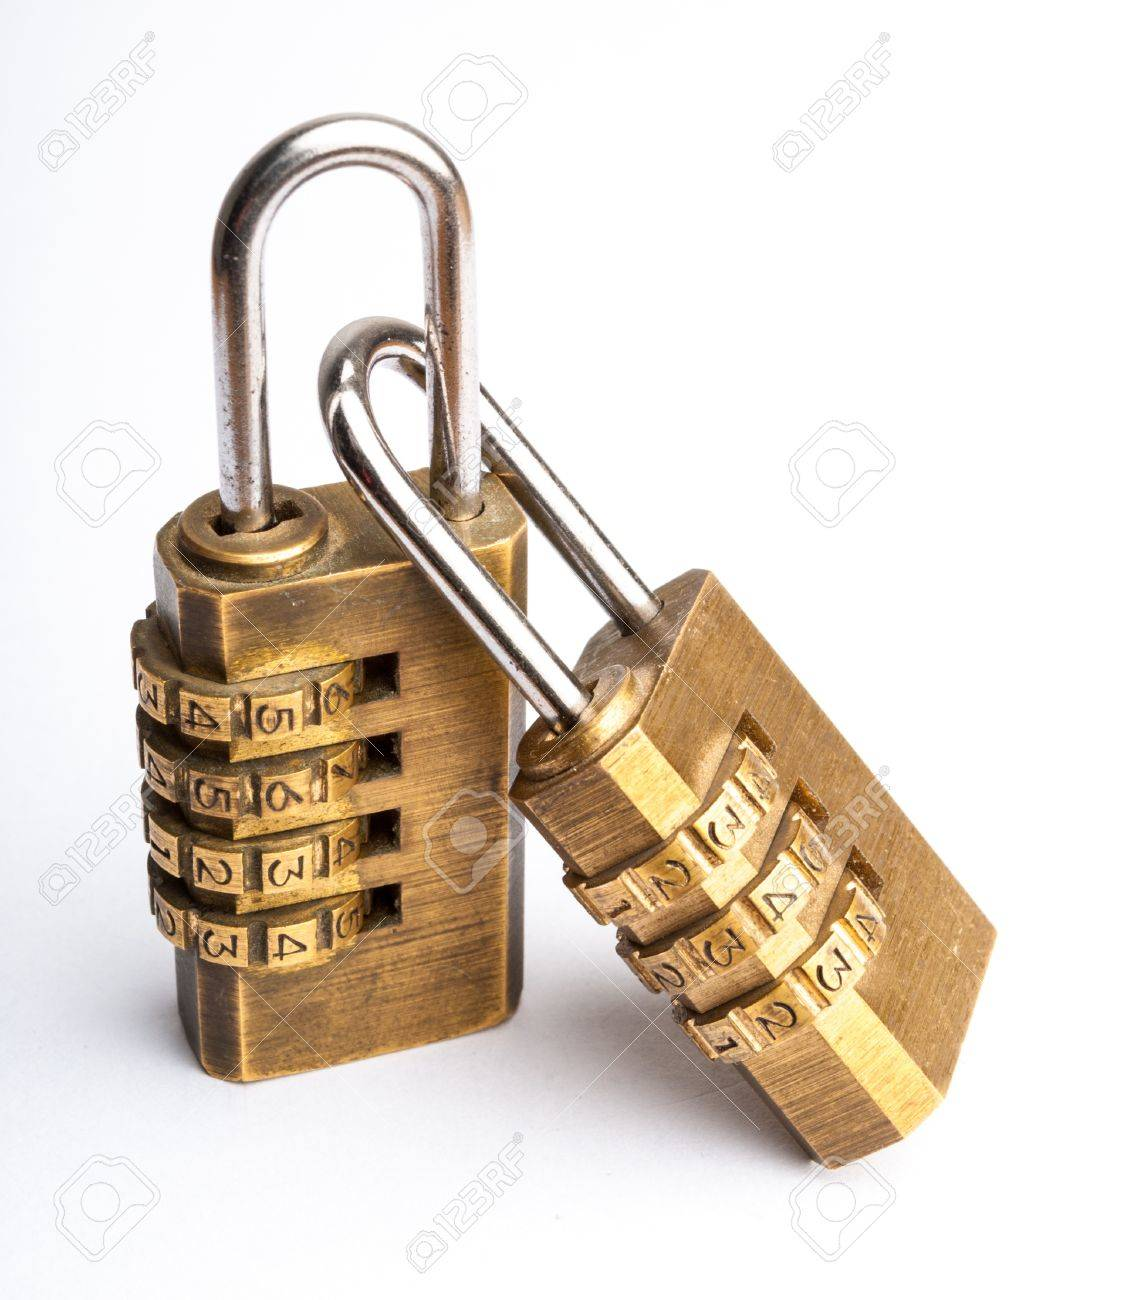 Related Pair of golden code master key, isolated Stock Photo - 18196284